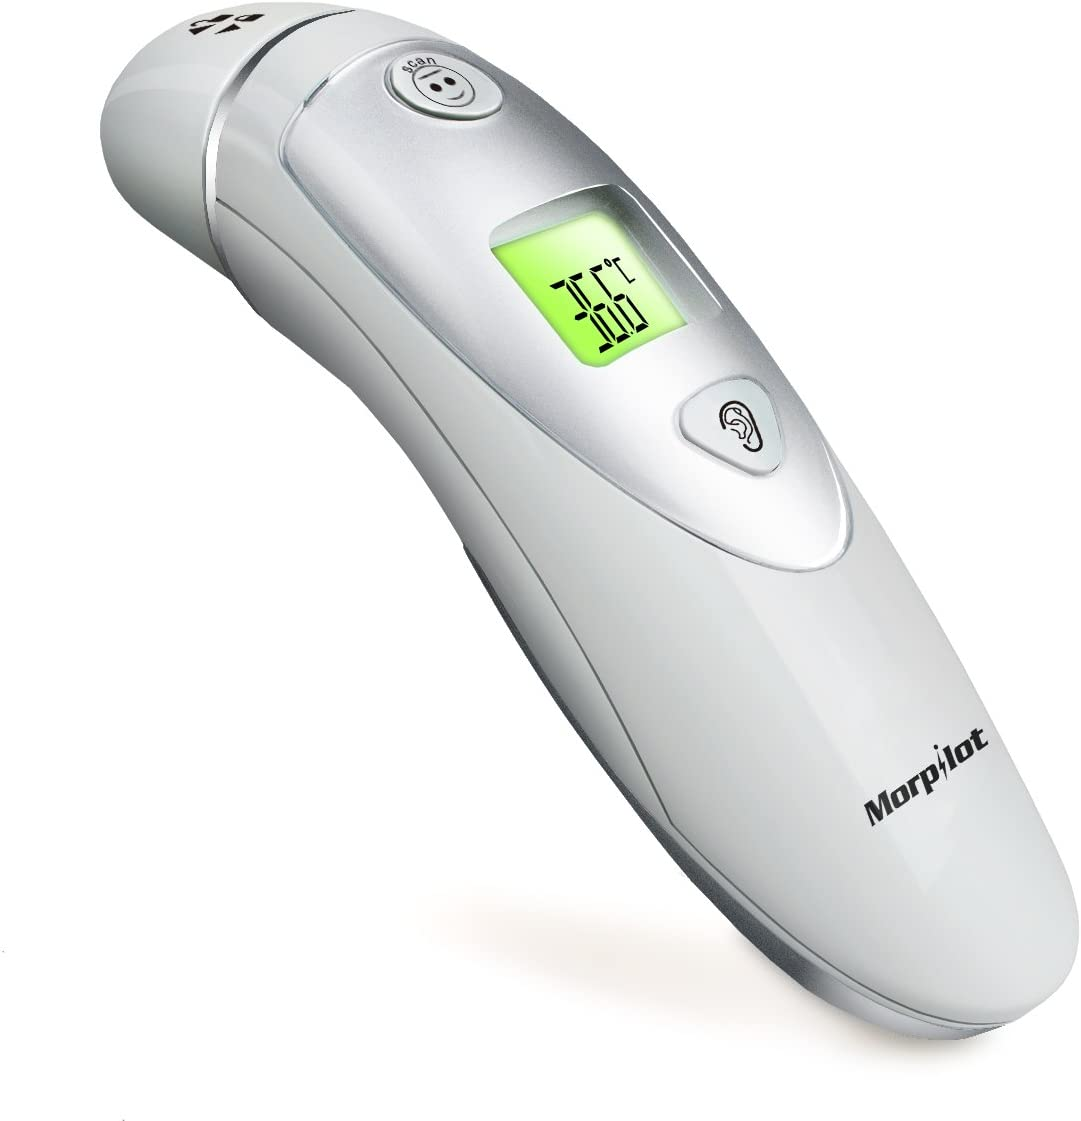 Ben2Co Digital Non-contact IR Infrared Thermometer Forehead Temperature Meter